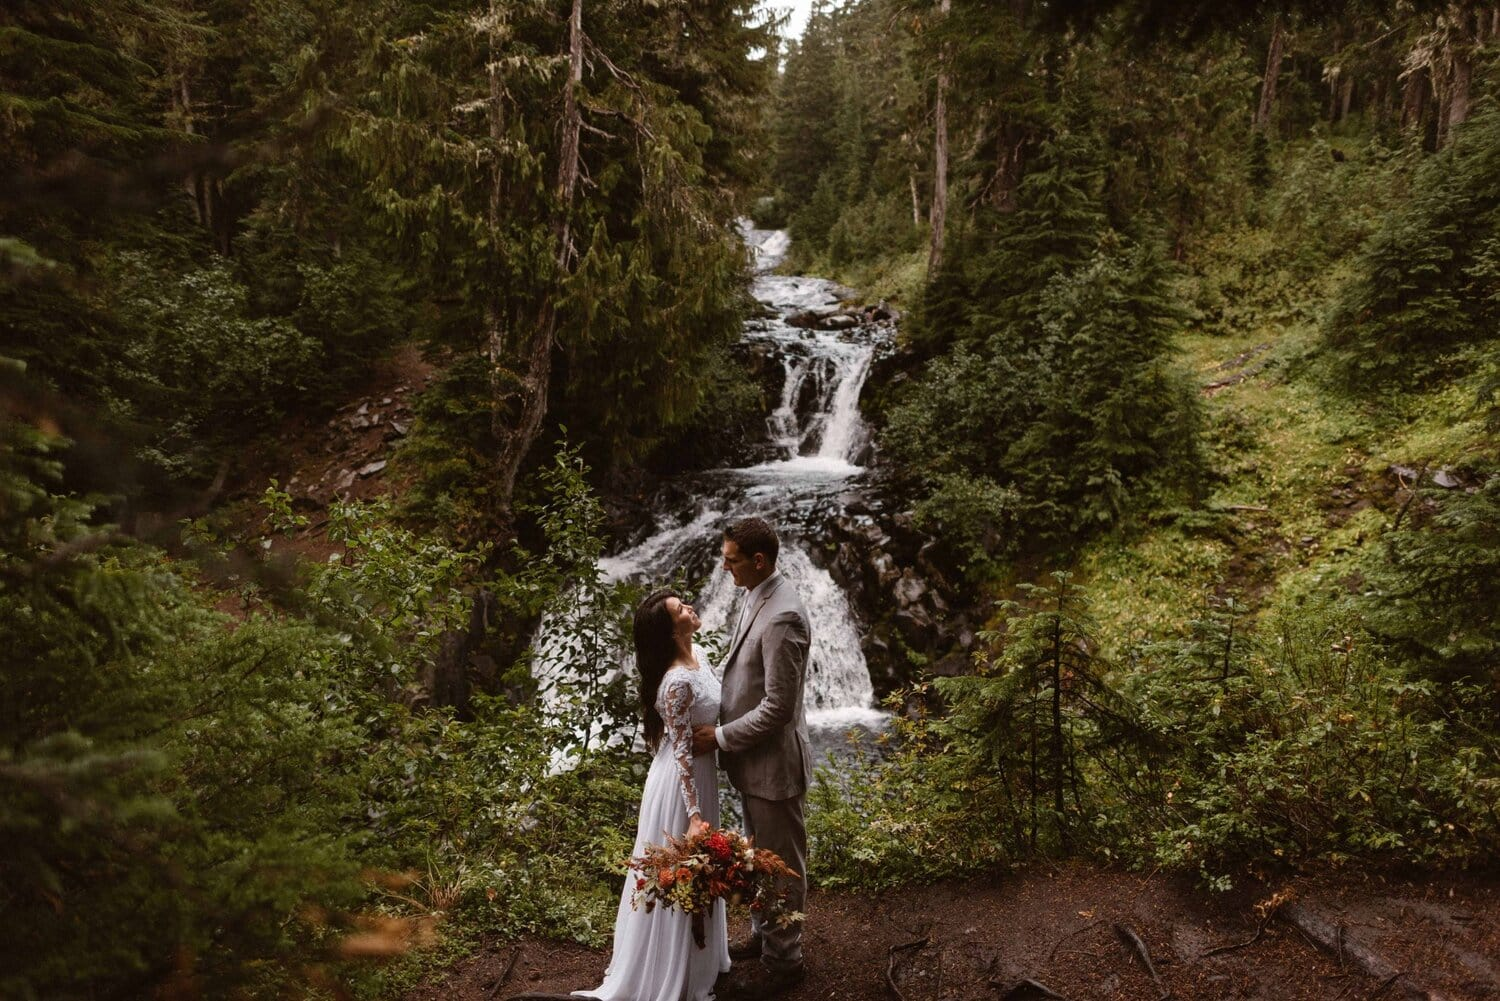 Bride and groom embrace near a waterfall during their wedding ceremony.